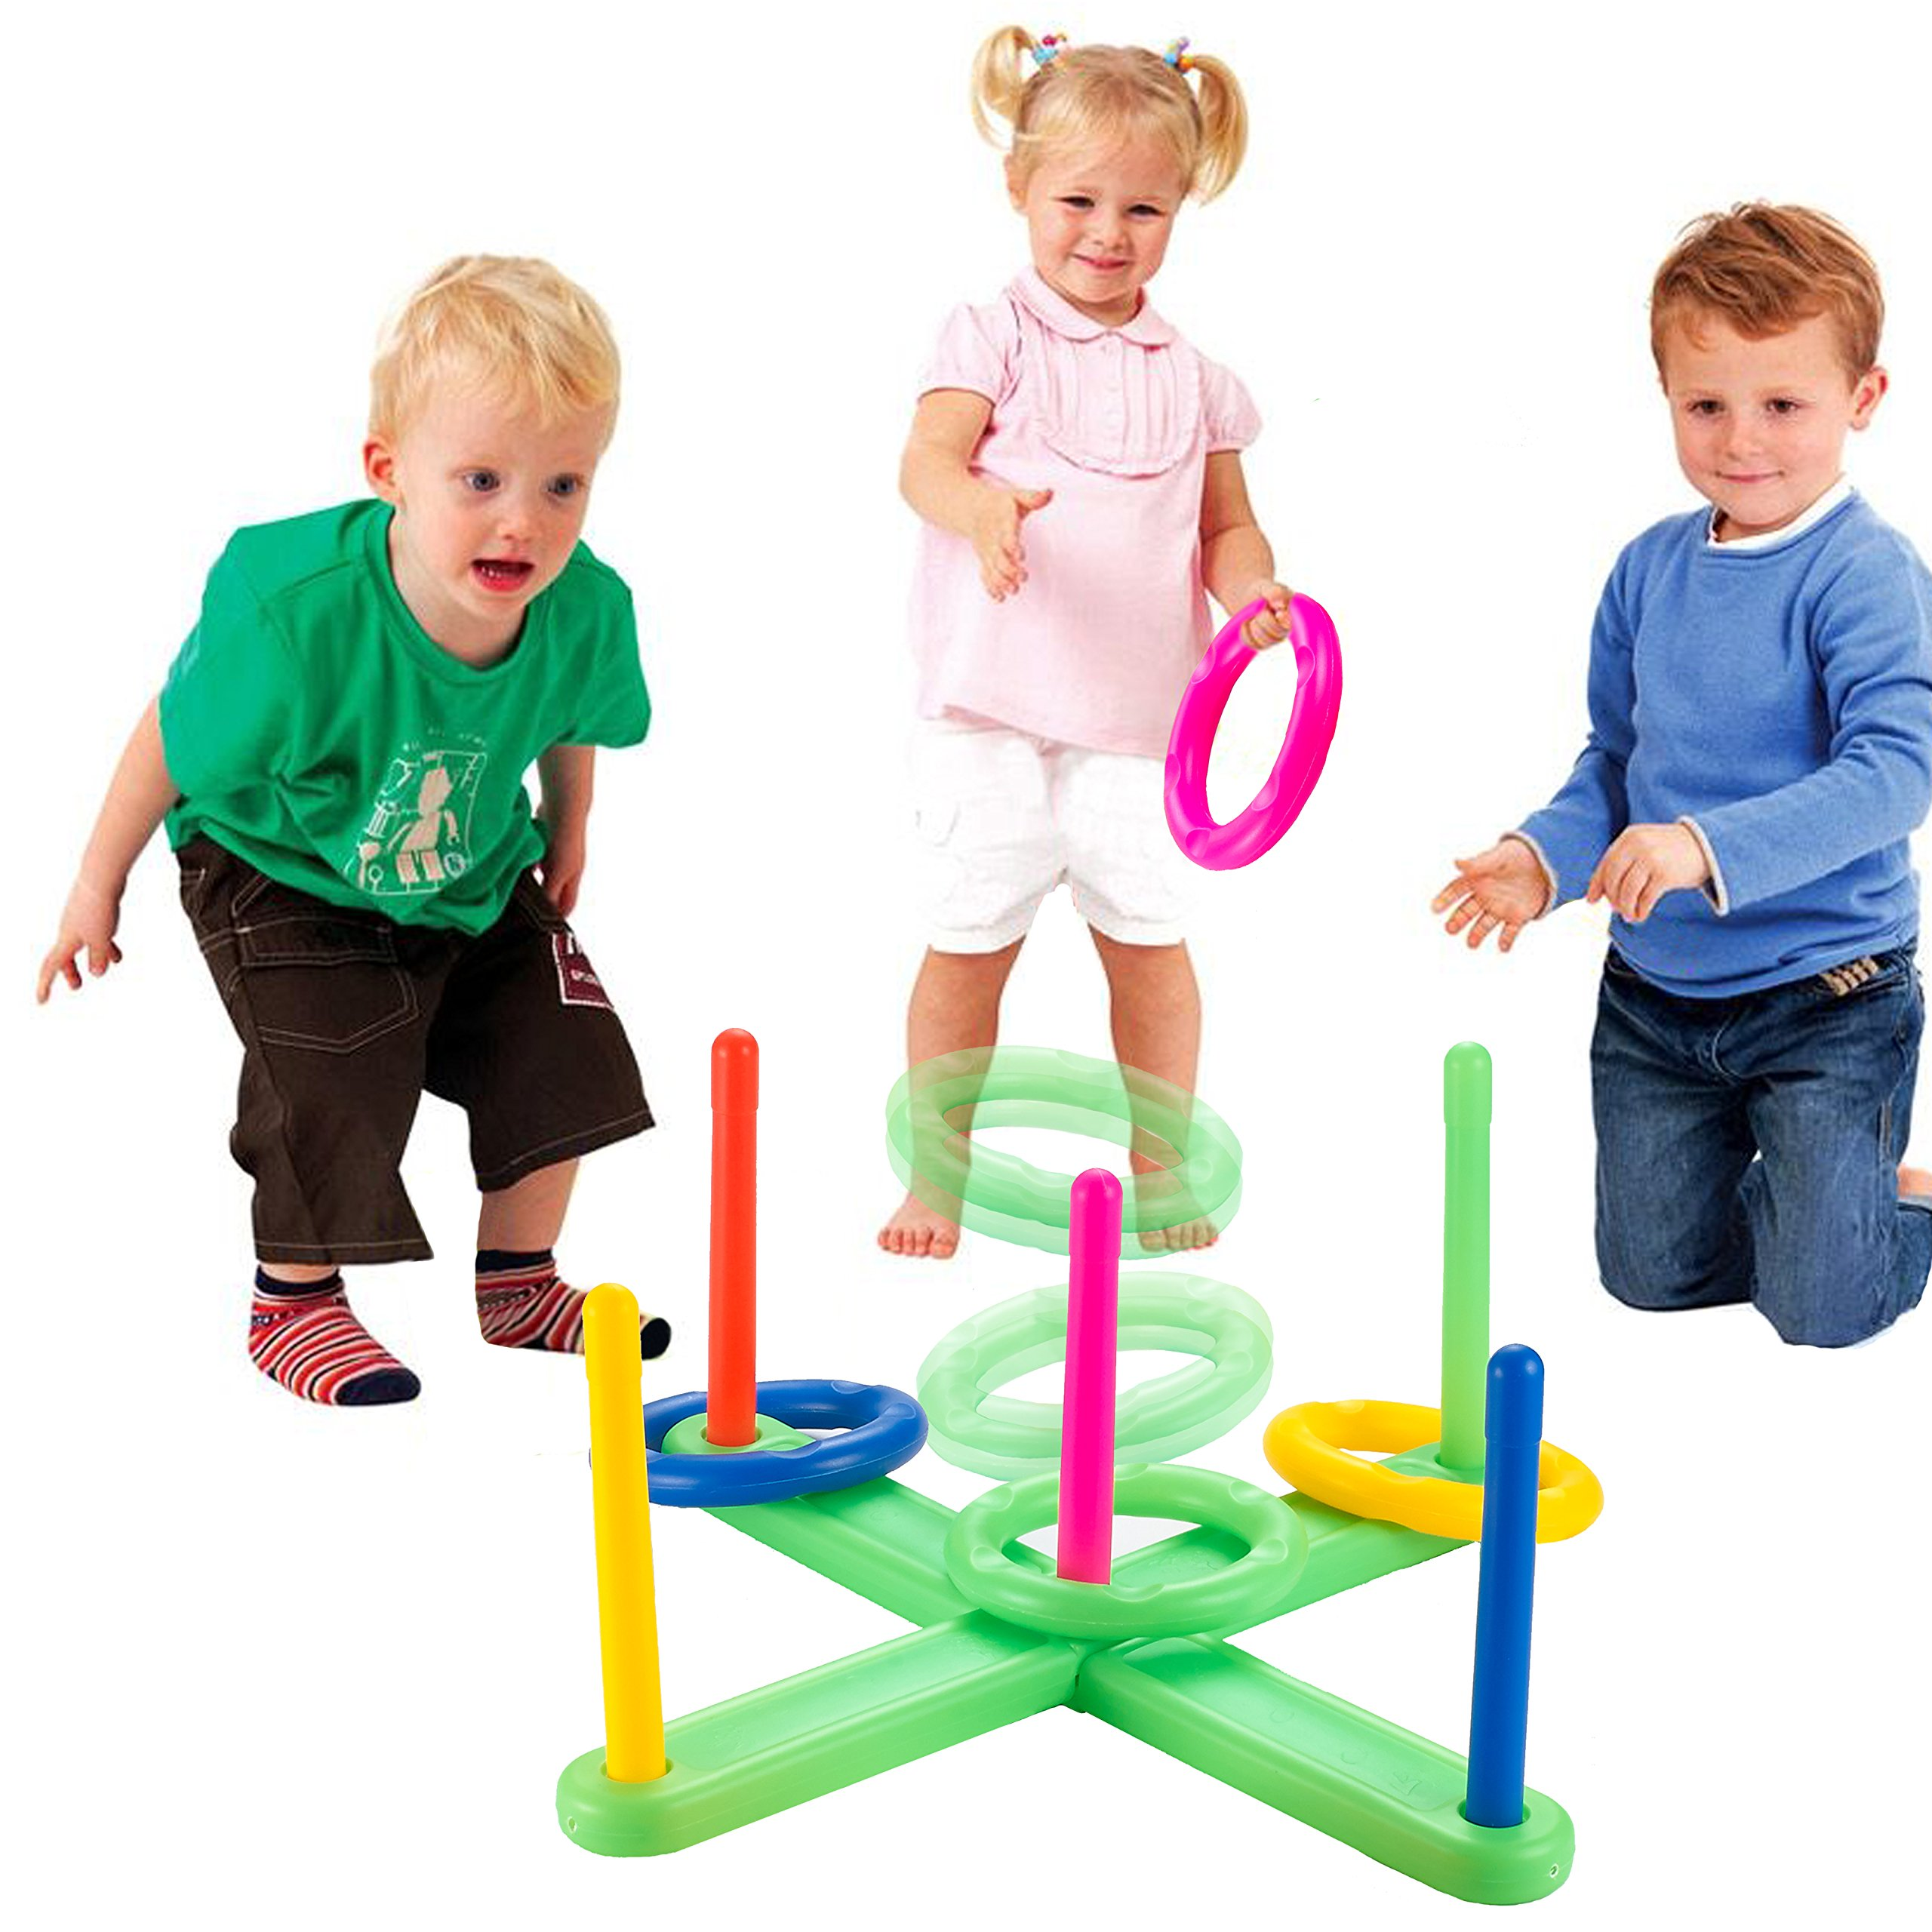 Minihorse-Ring Toss Game,Kids Games Improve Eye-Hand Coordination and Fine Motor Skills,Loop Hoop Ring Toss Game,Outdoor/Indoor Quoits Ring Game For Kids or Family,Gift for Kids 4-15 Years Old